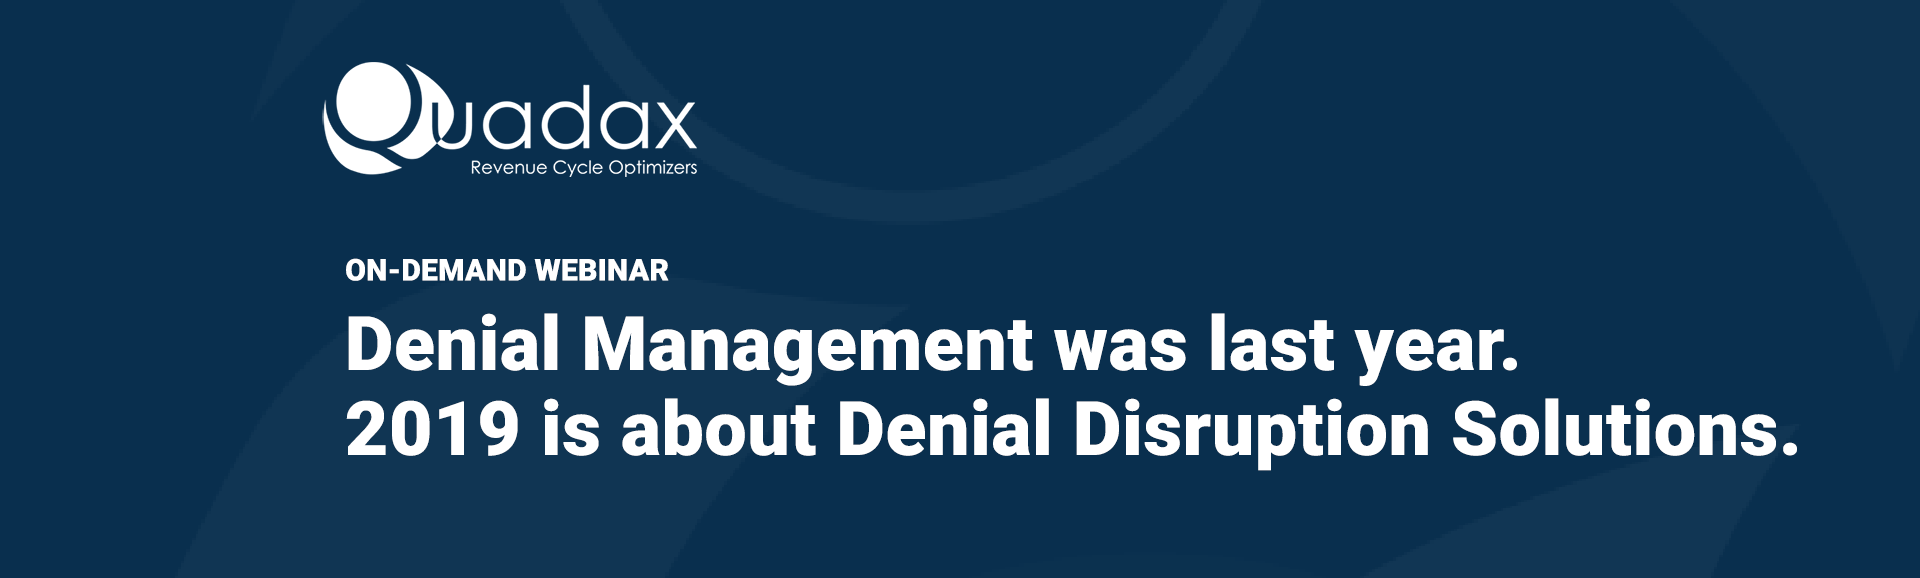 On-Demand-Webinar-LP-DenialMgmt